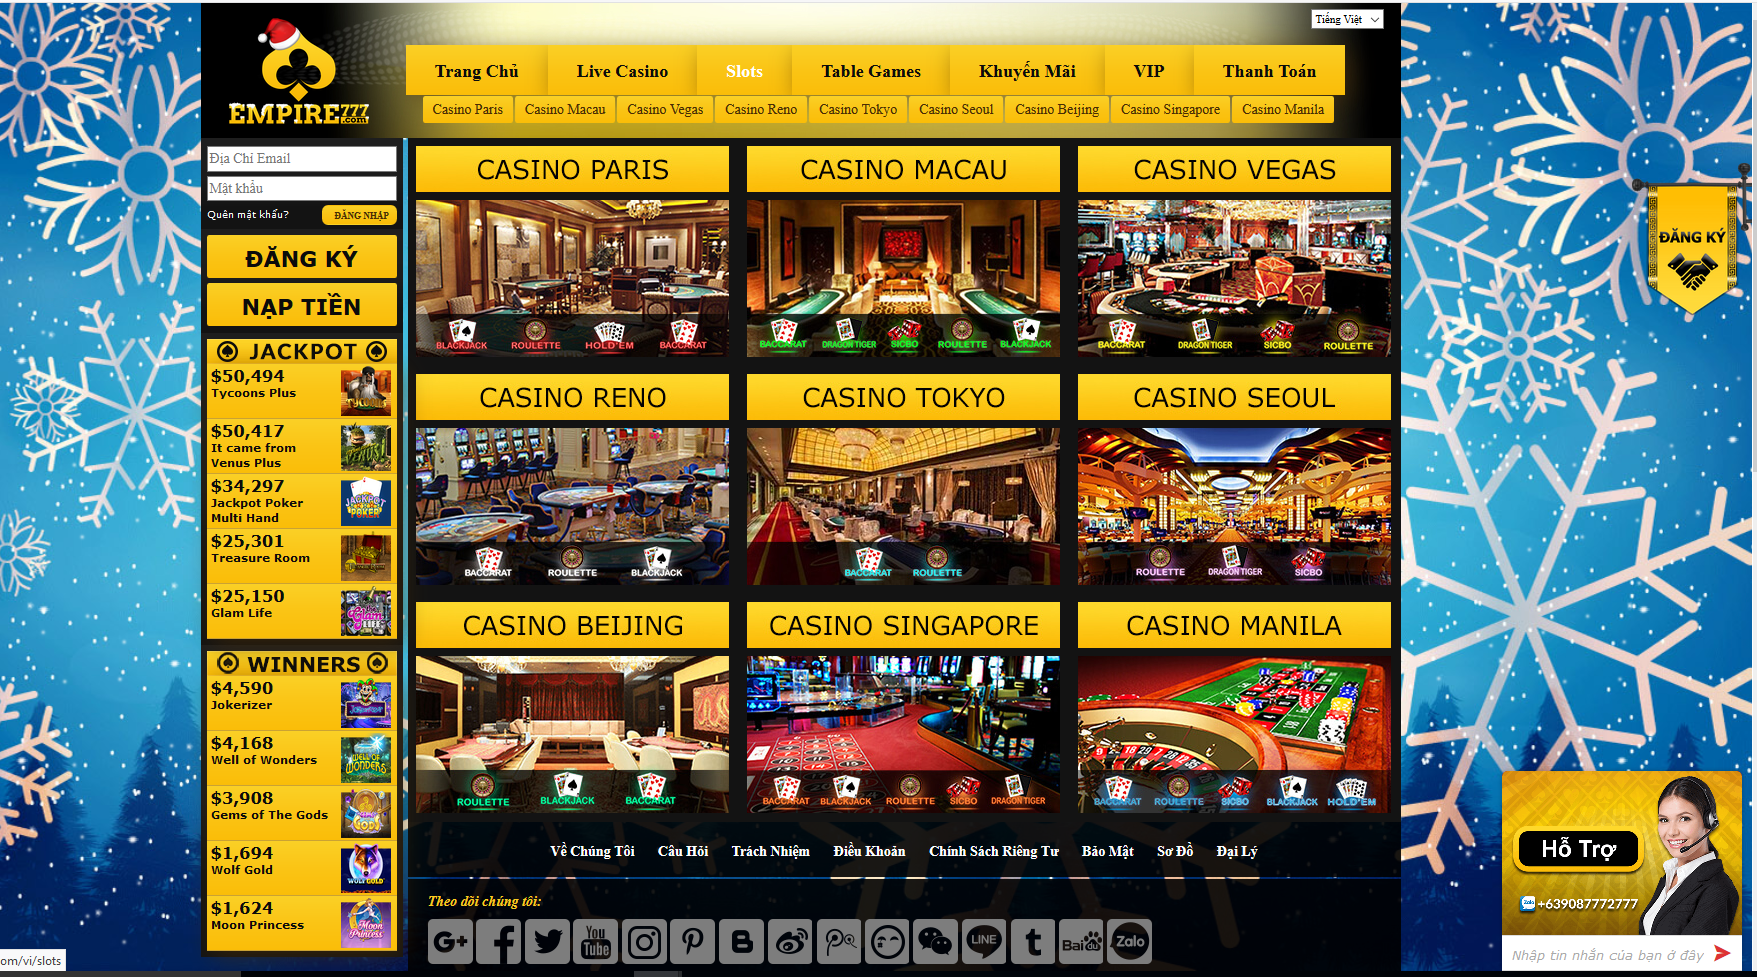 Casino online EMPIRE777